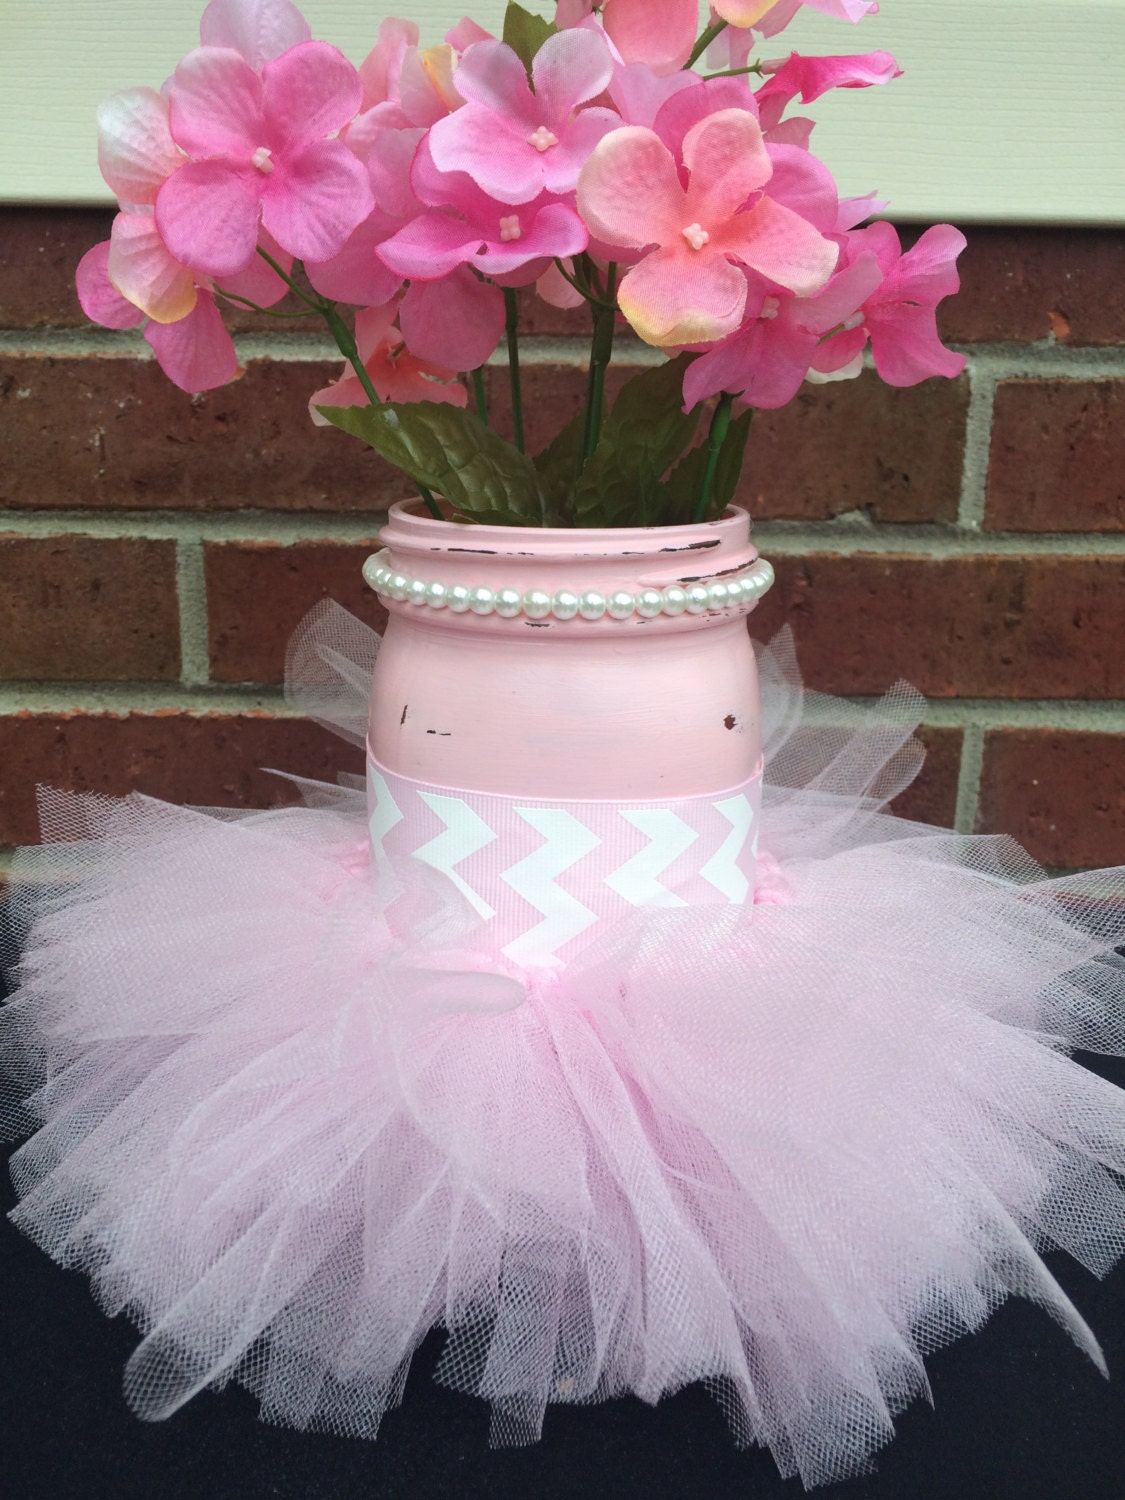 It 39 s a girl baby shower decor painted pink mason jar - Decoration baby shower girl ...